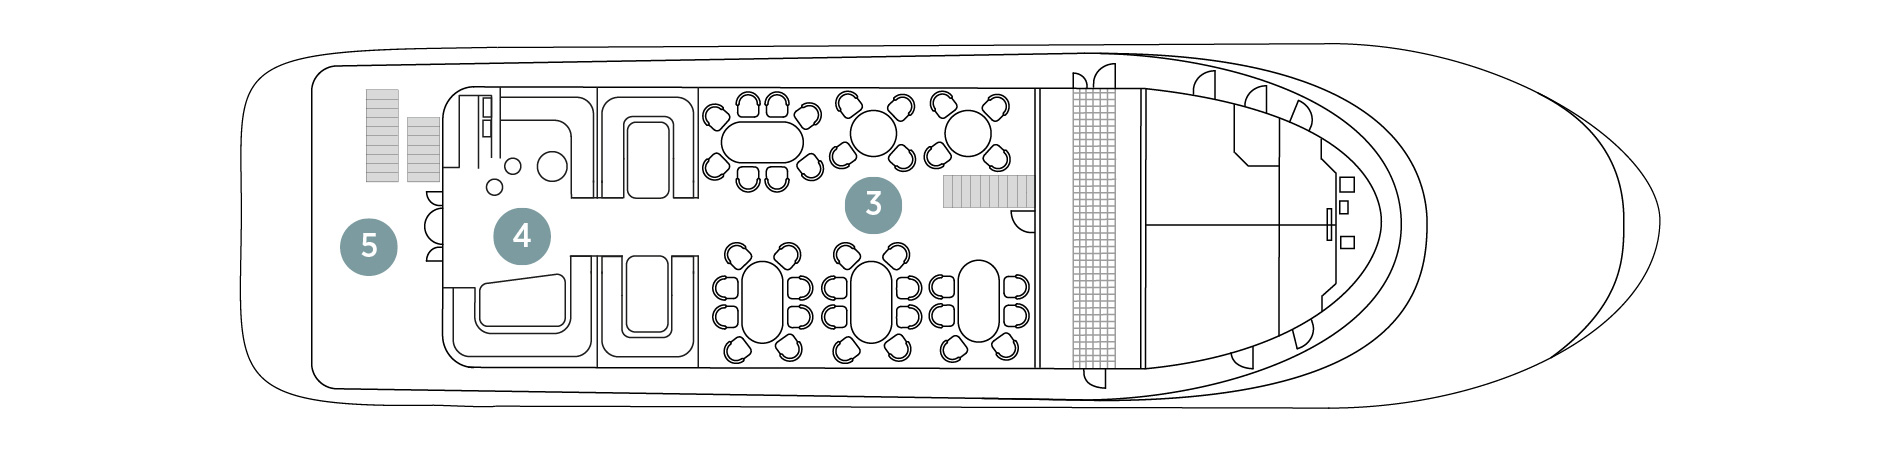 Adriatic Pearl Upper Deck plan